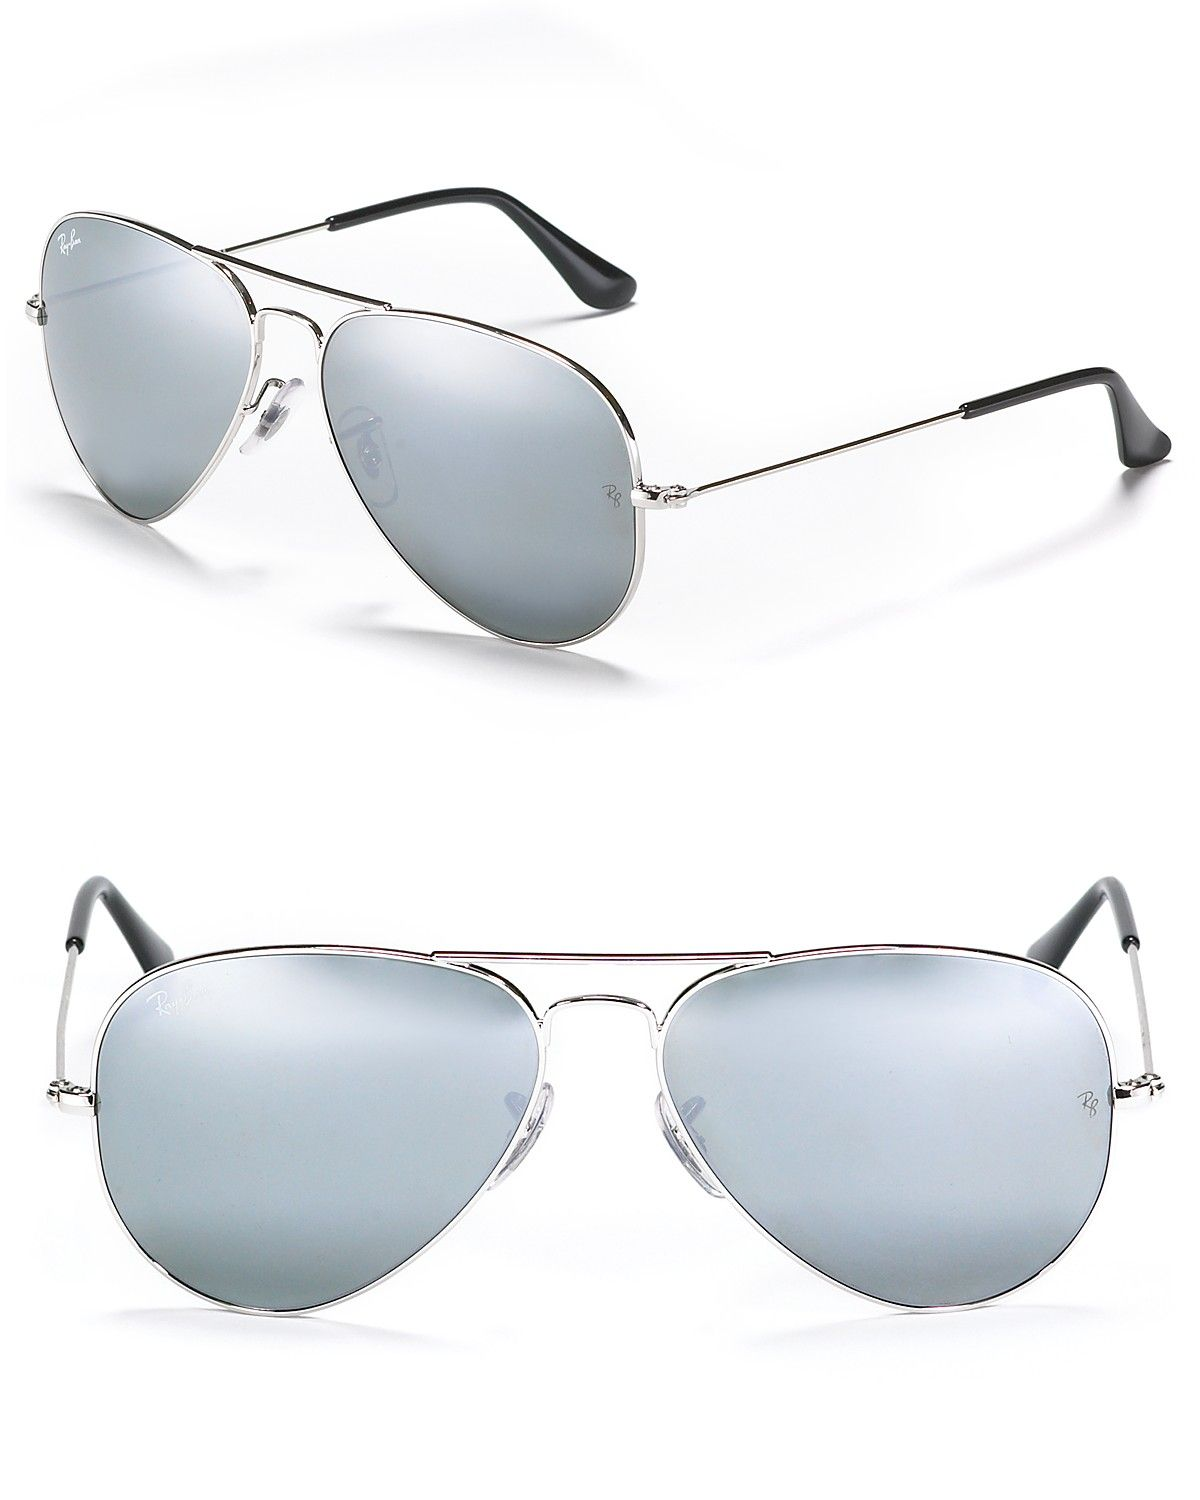 Ray Ban Mirrored Aviator Sunglasses  17 best images about frames and glasses on pinterest